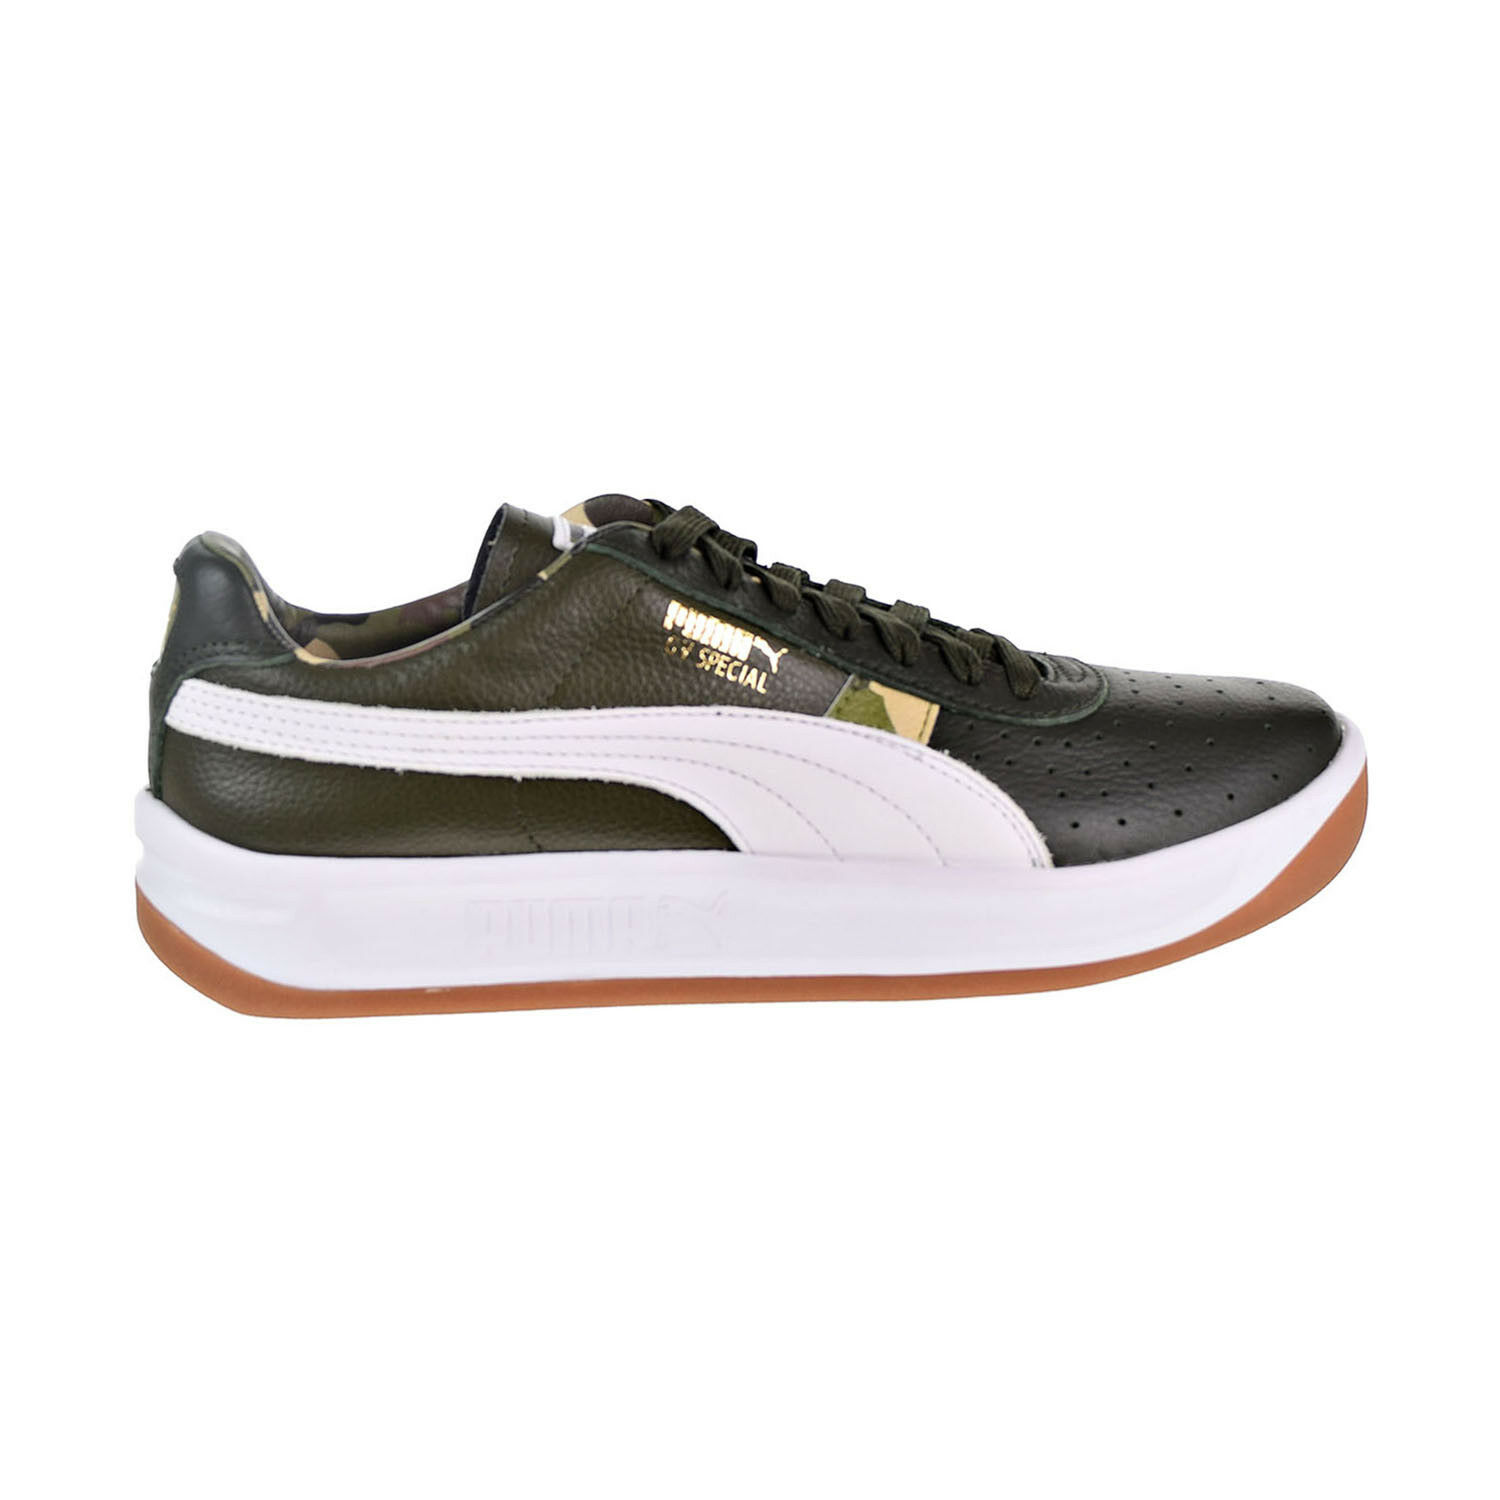 Puma GV Special Wild Camo Special Men's shoes Night Puma White gold 368371-01